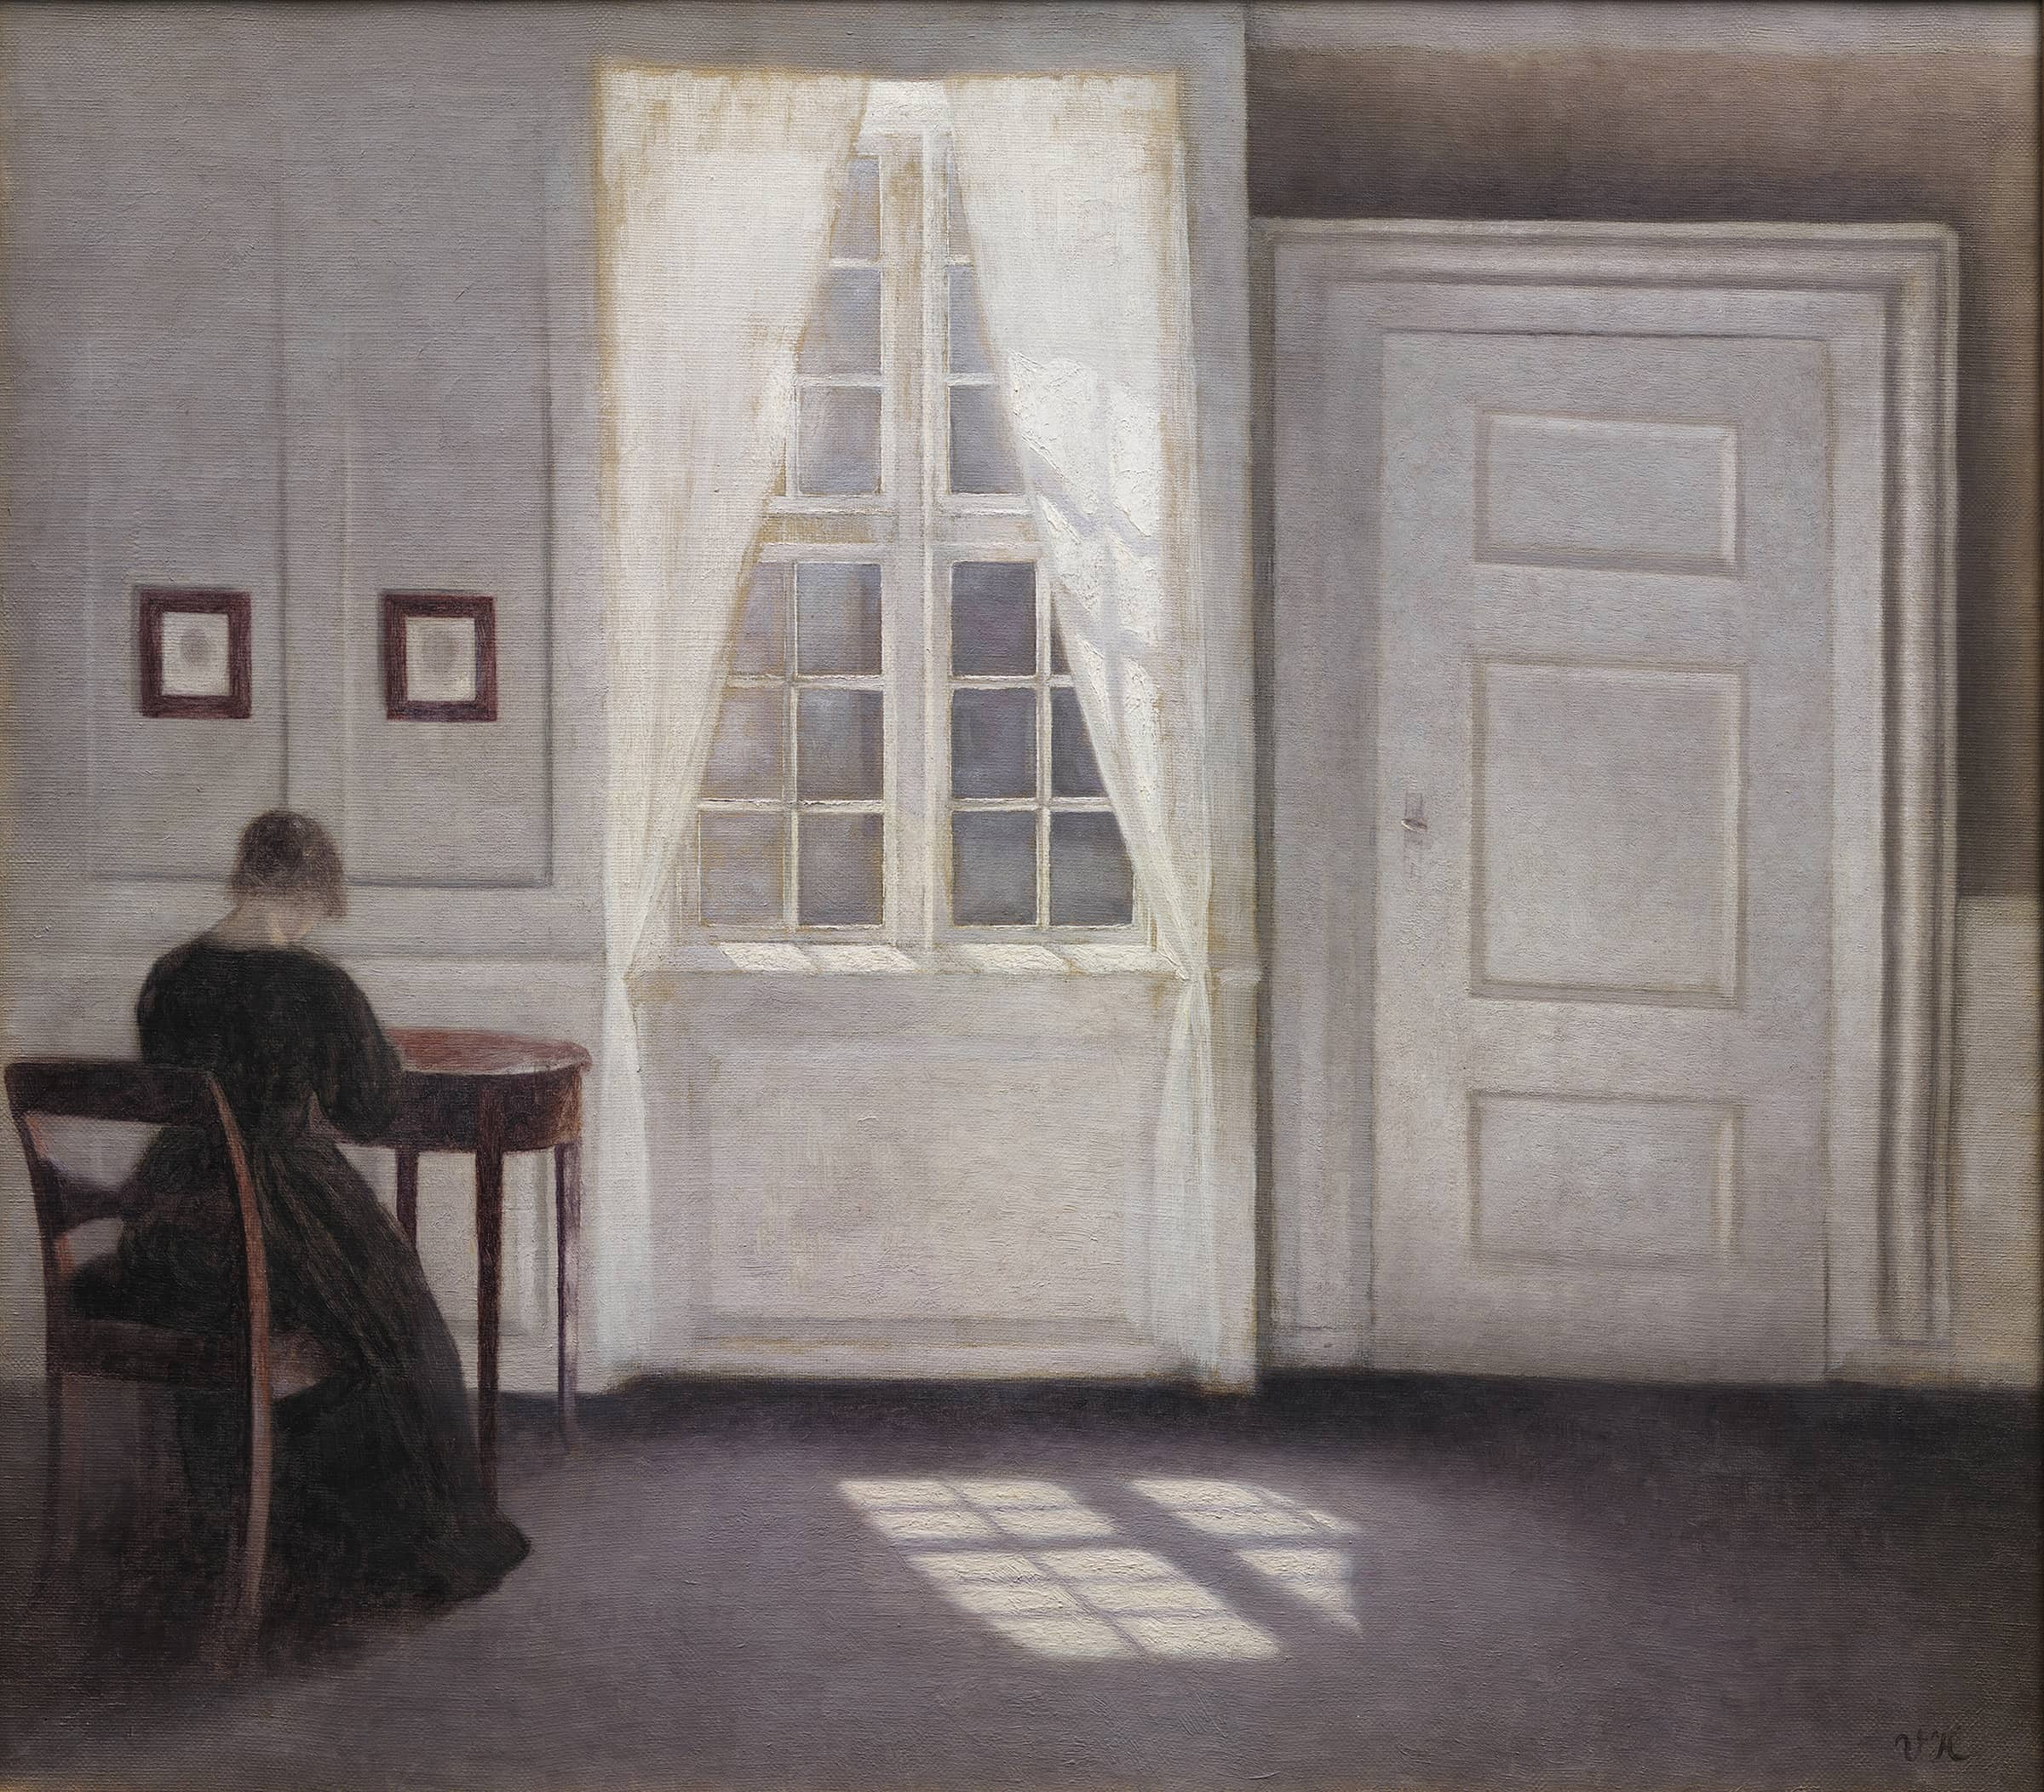 Interior in Strandgade, Sunlight on the Floor, Vilhelm Hammershoi, 1901